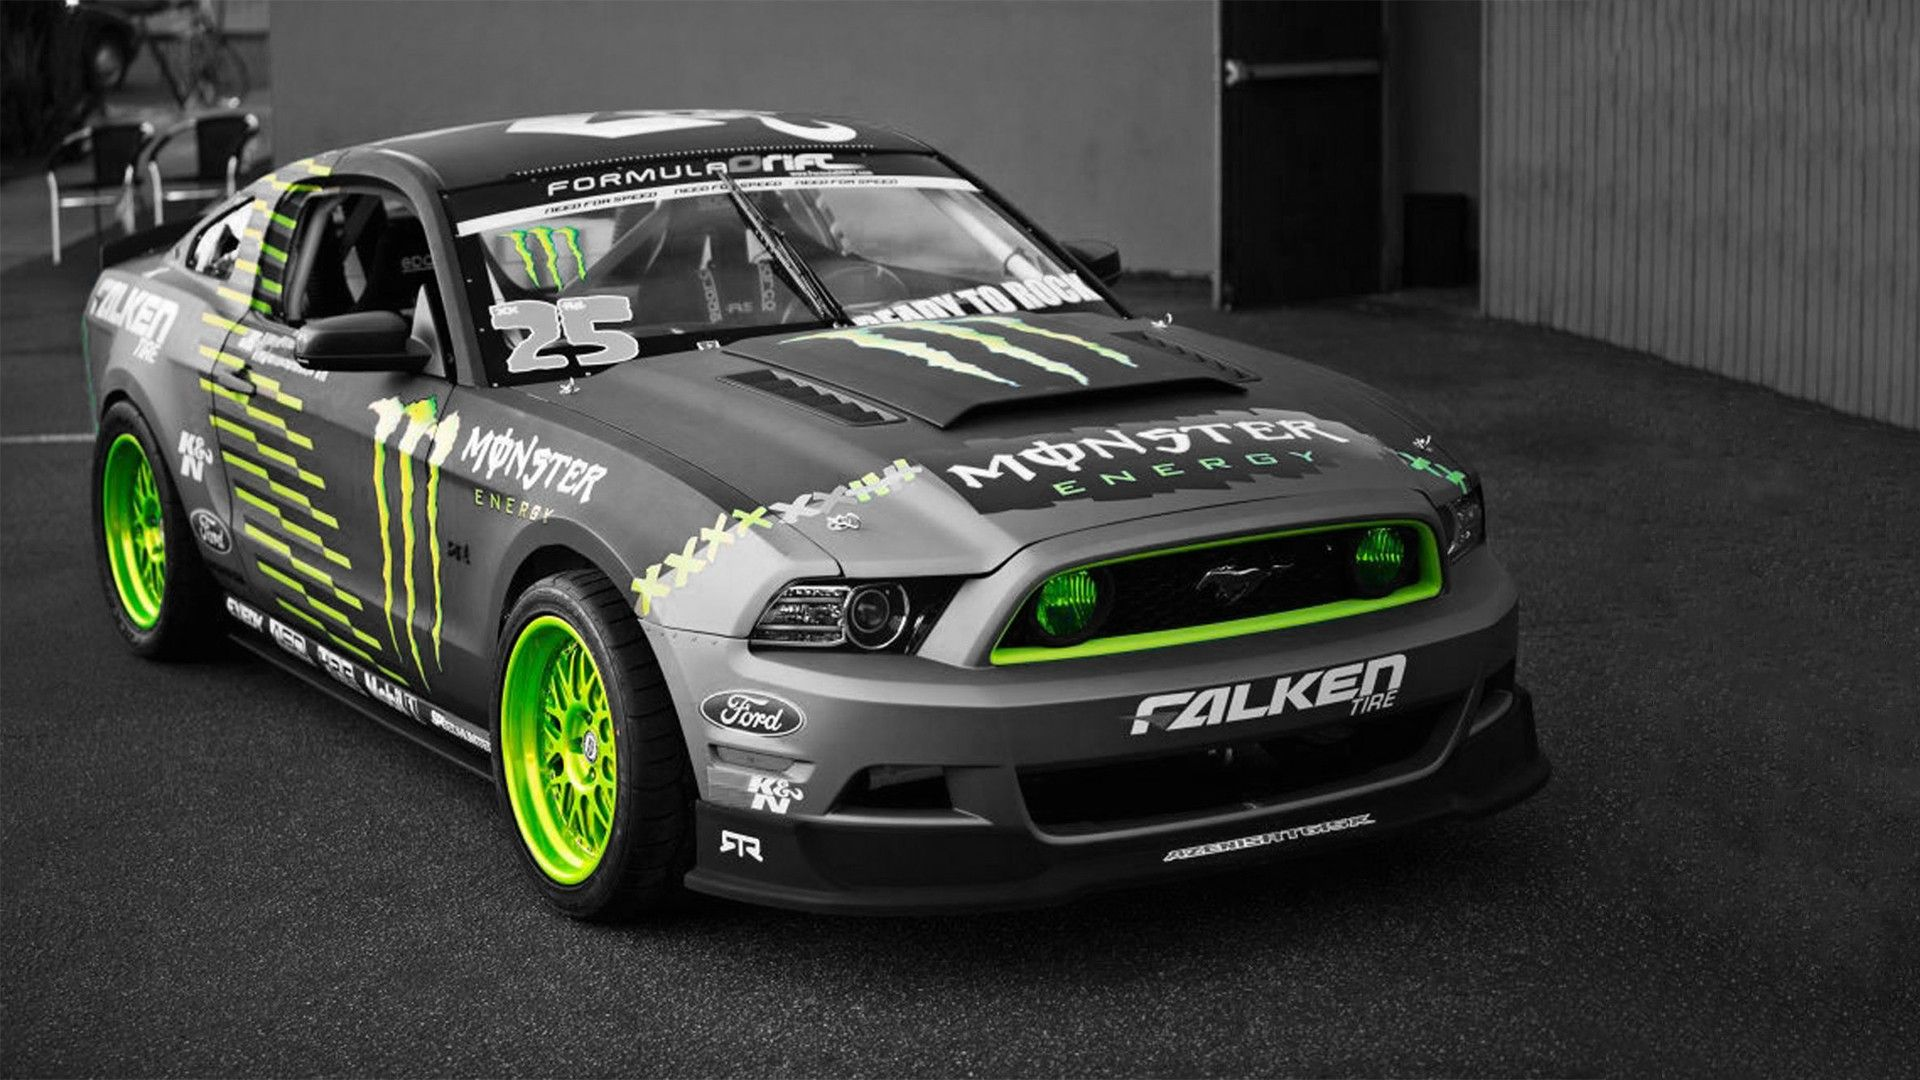 Green Cars Ford Mustang Selective Coloring Monster Energy Sports